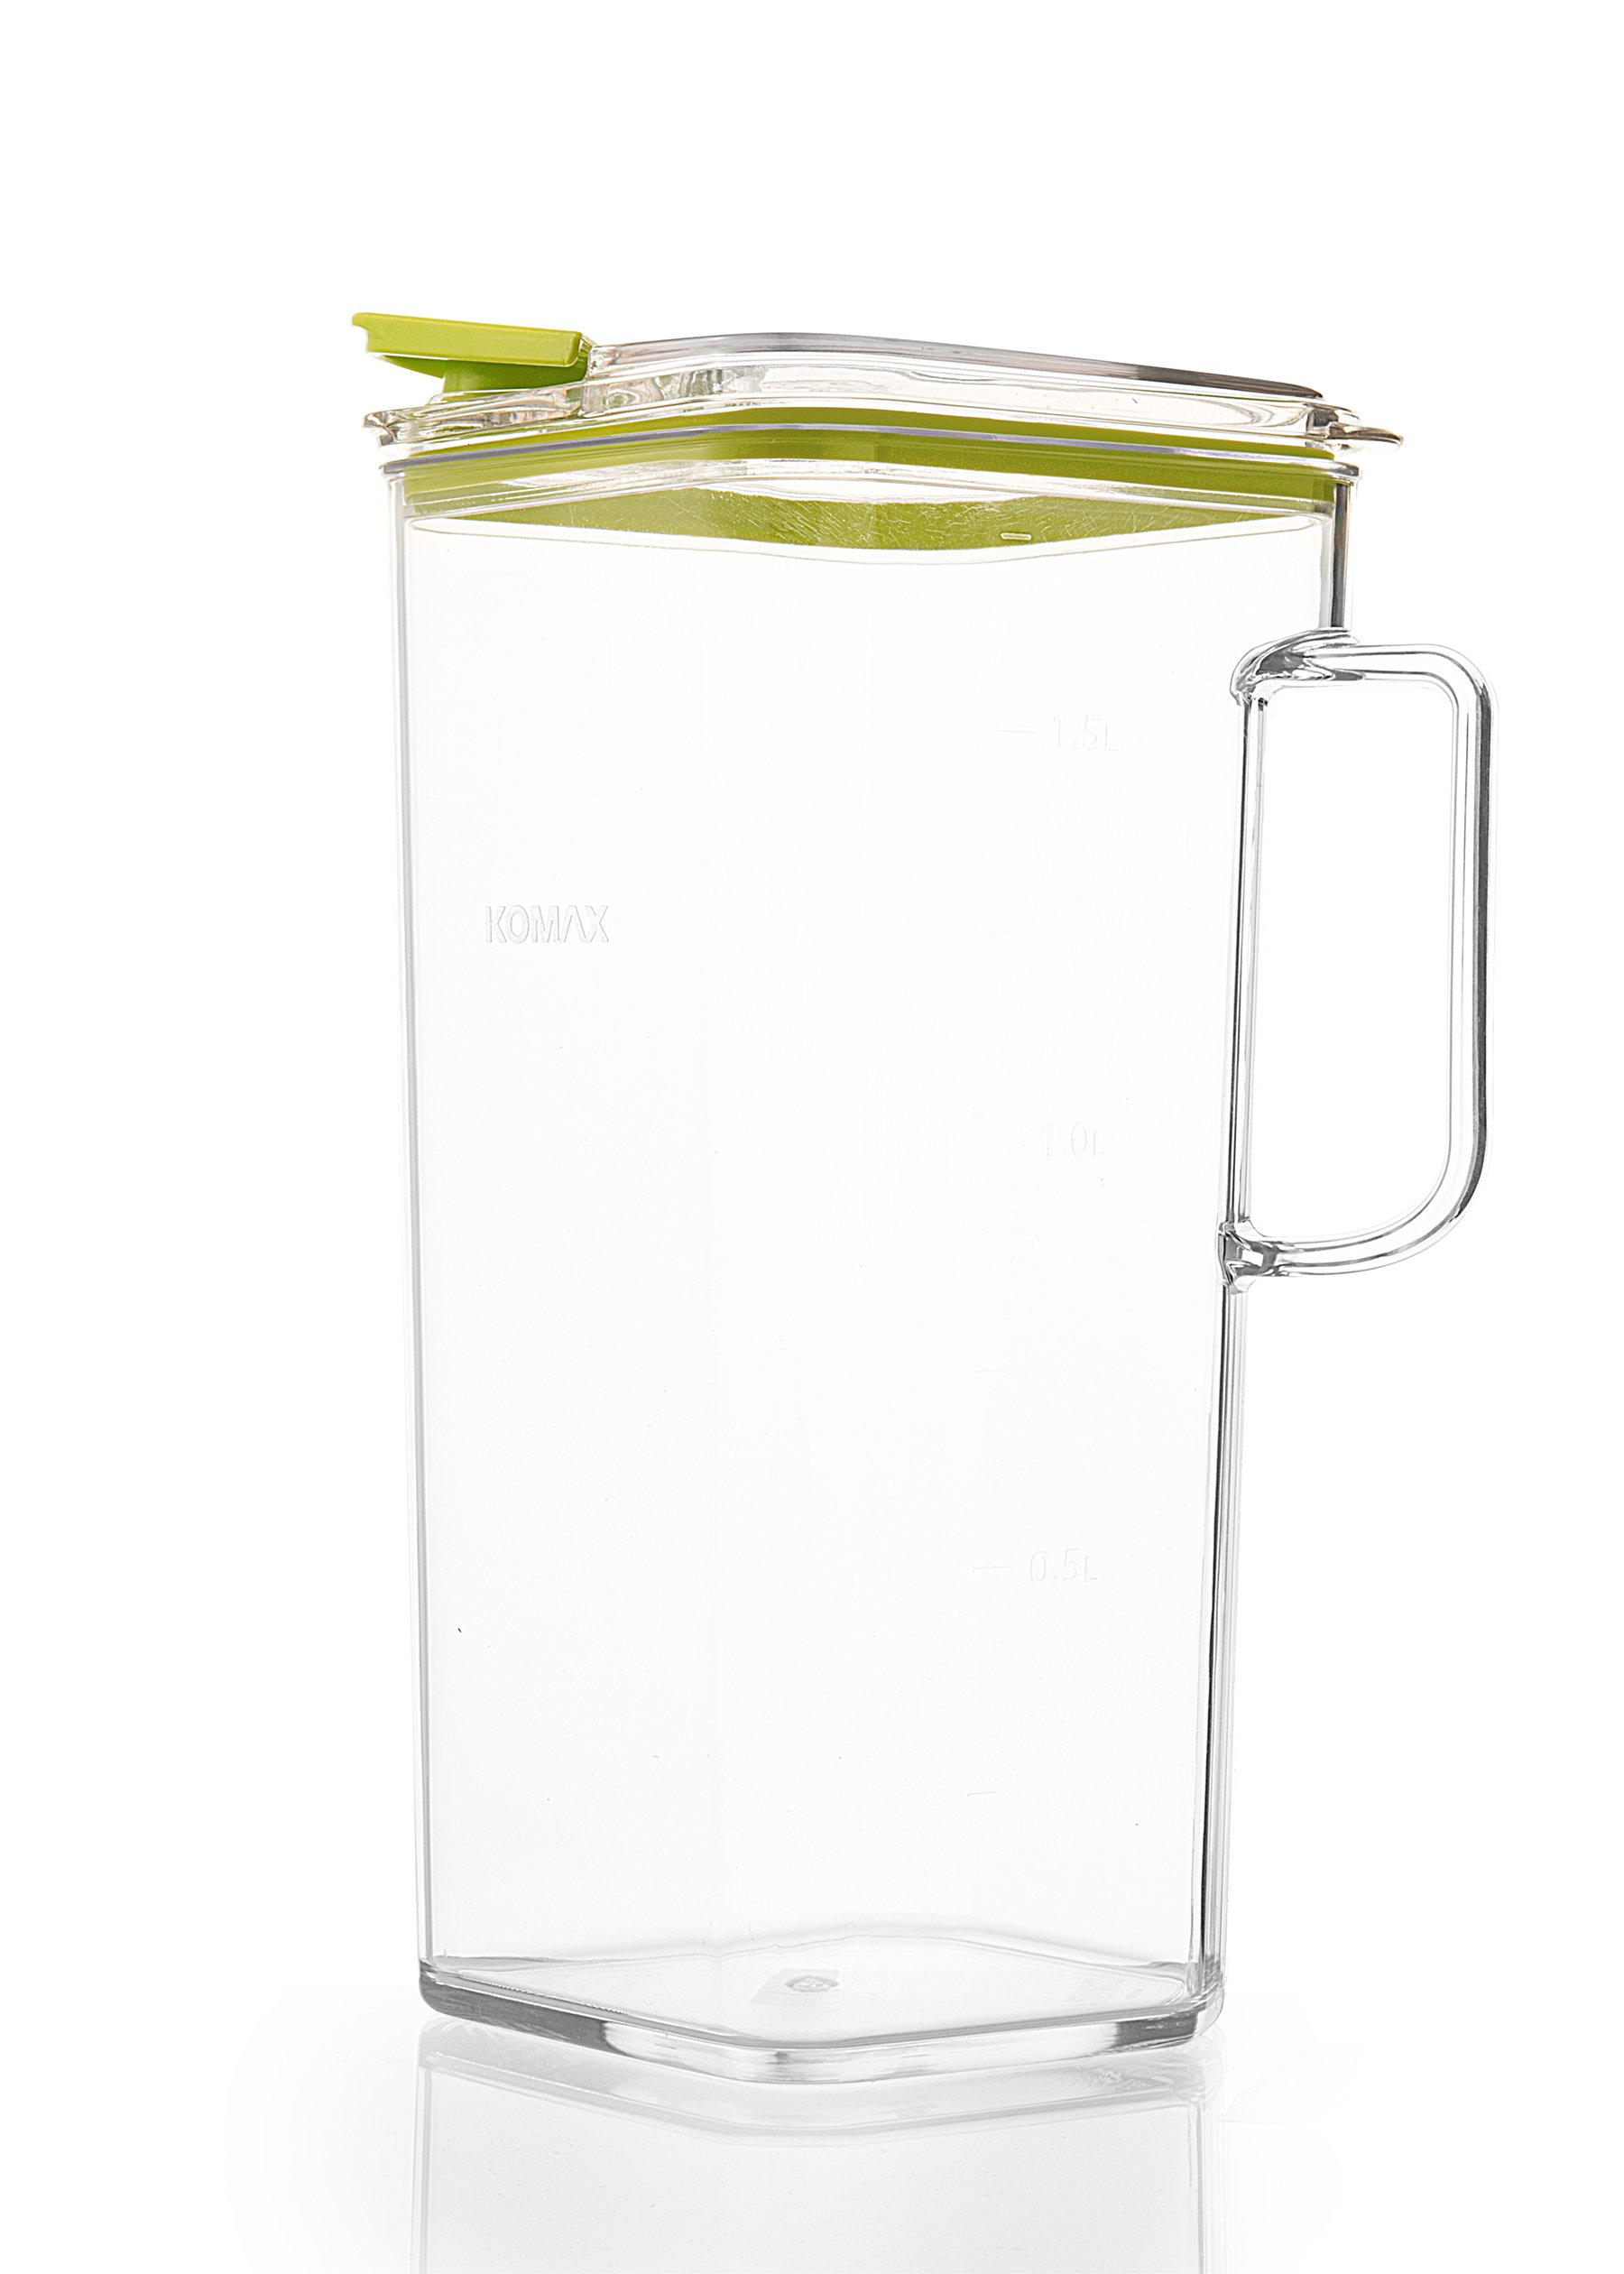 Komax Tritan Clear Large (2 quart) Pitcher With Green Lid BPA-Free - Great for Iced tea & Water